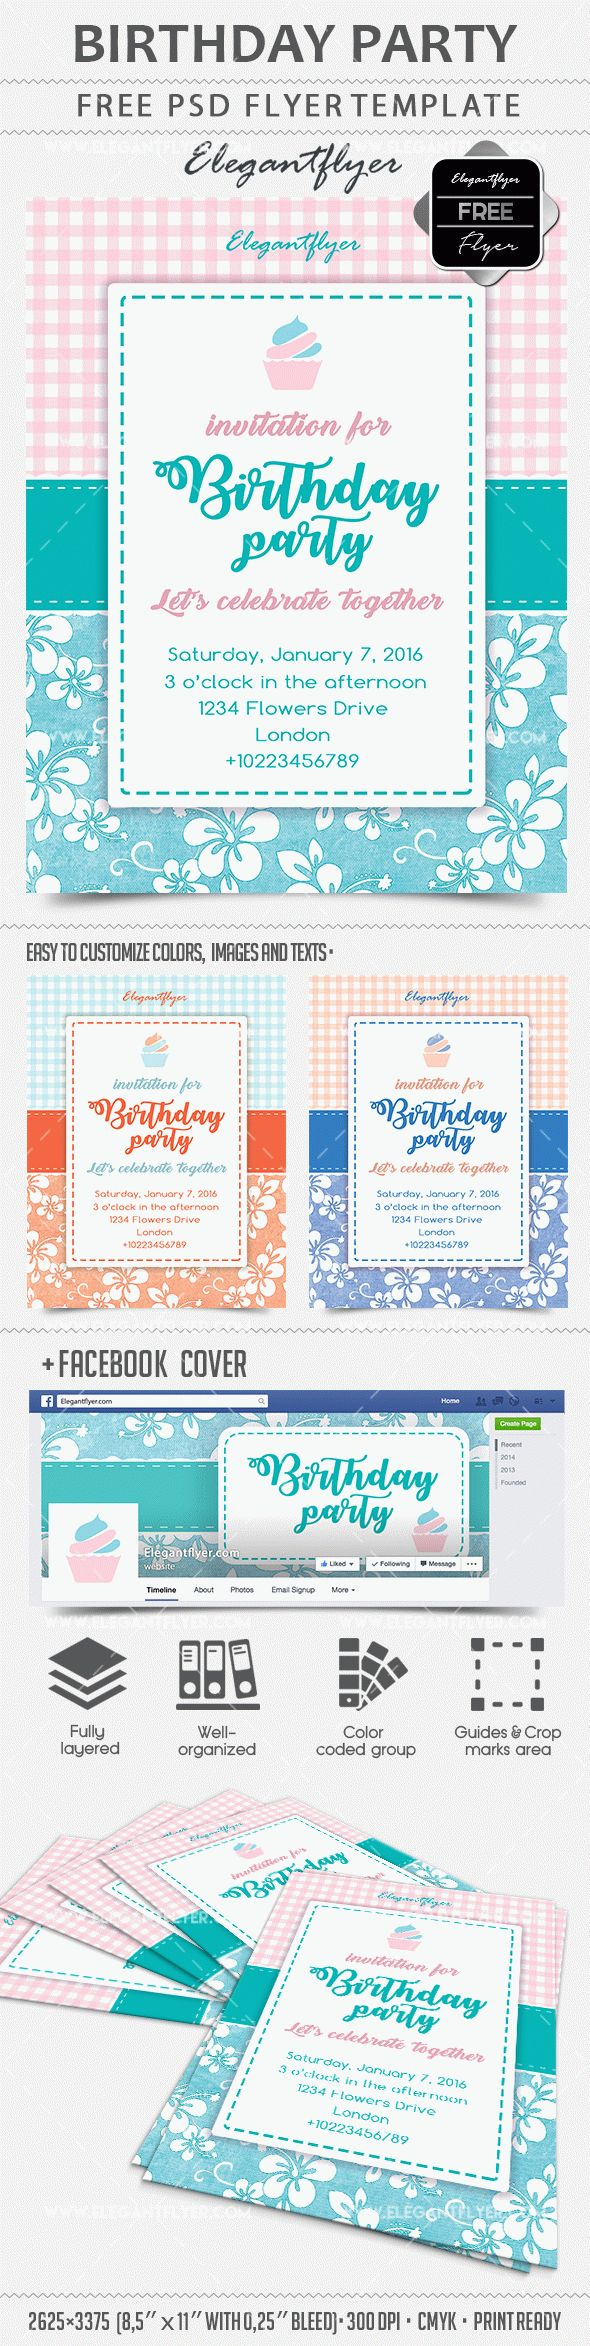 Free Birthday Party Flyer PSD Template